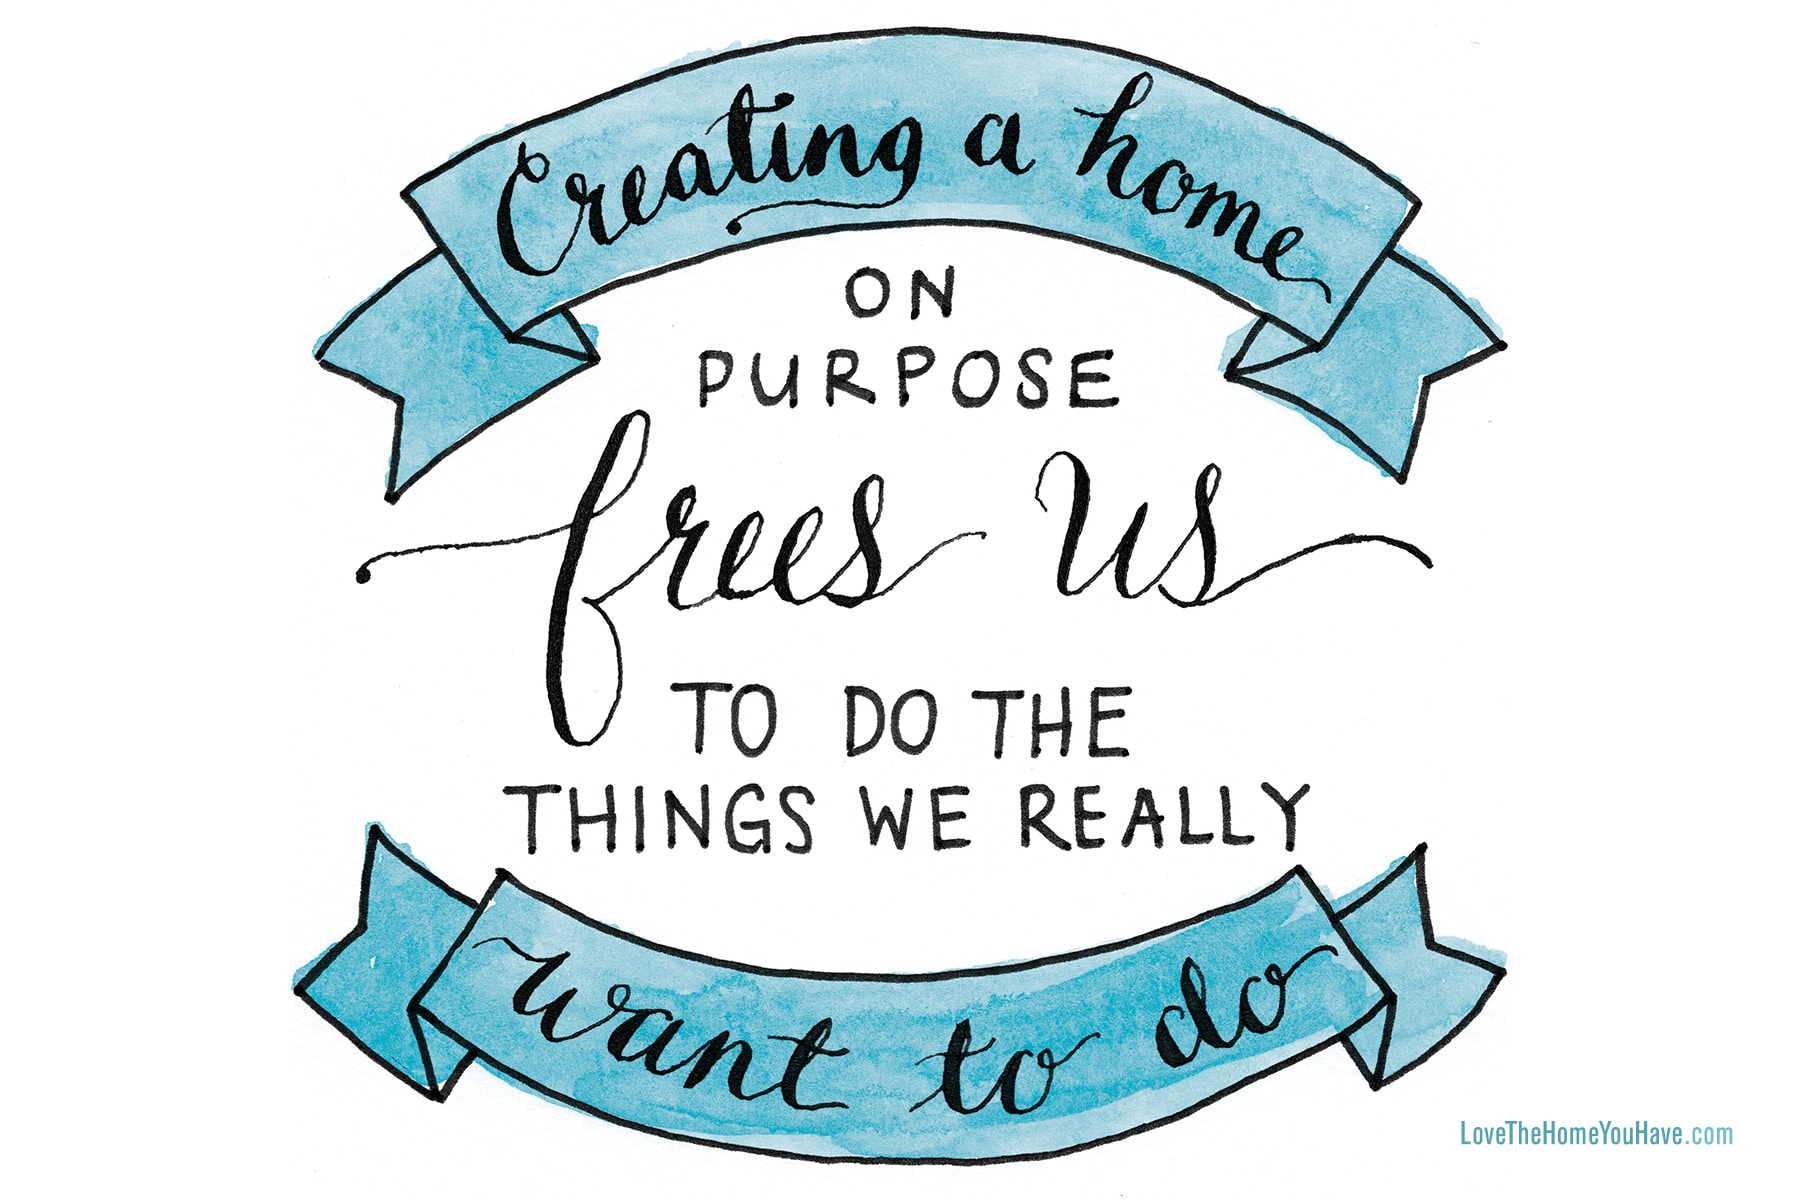 Create A Home on Purpose